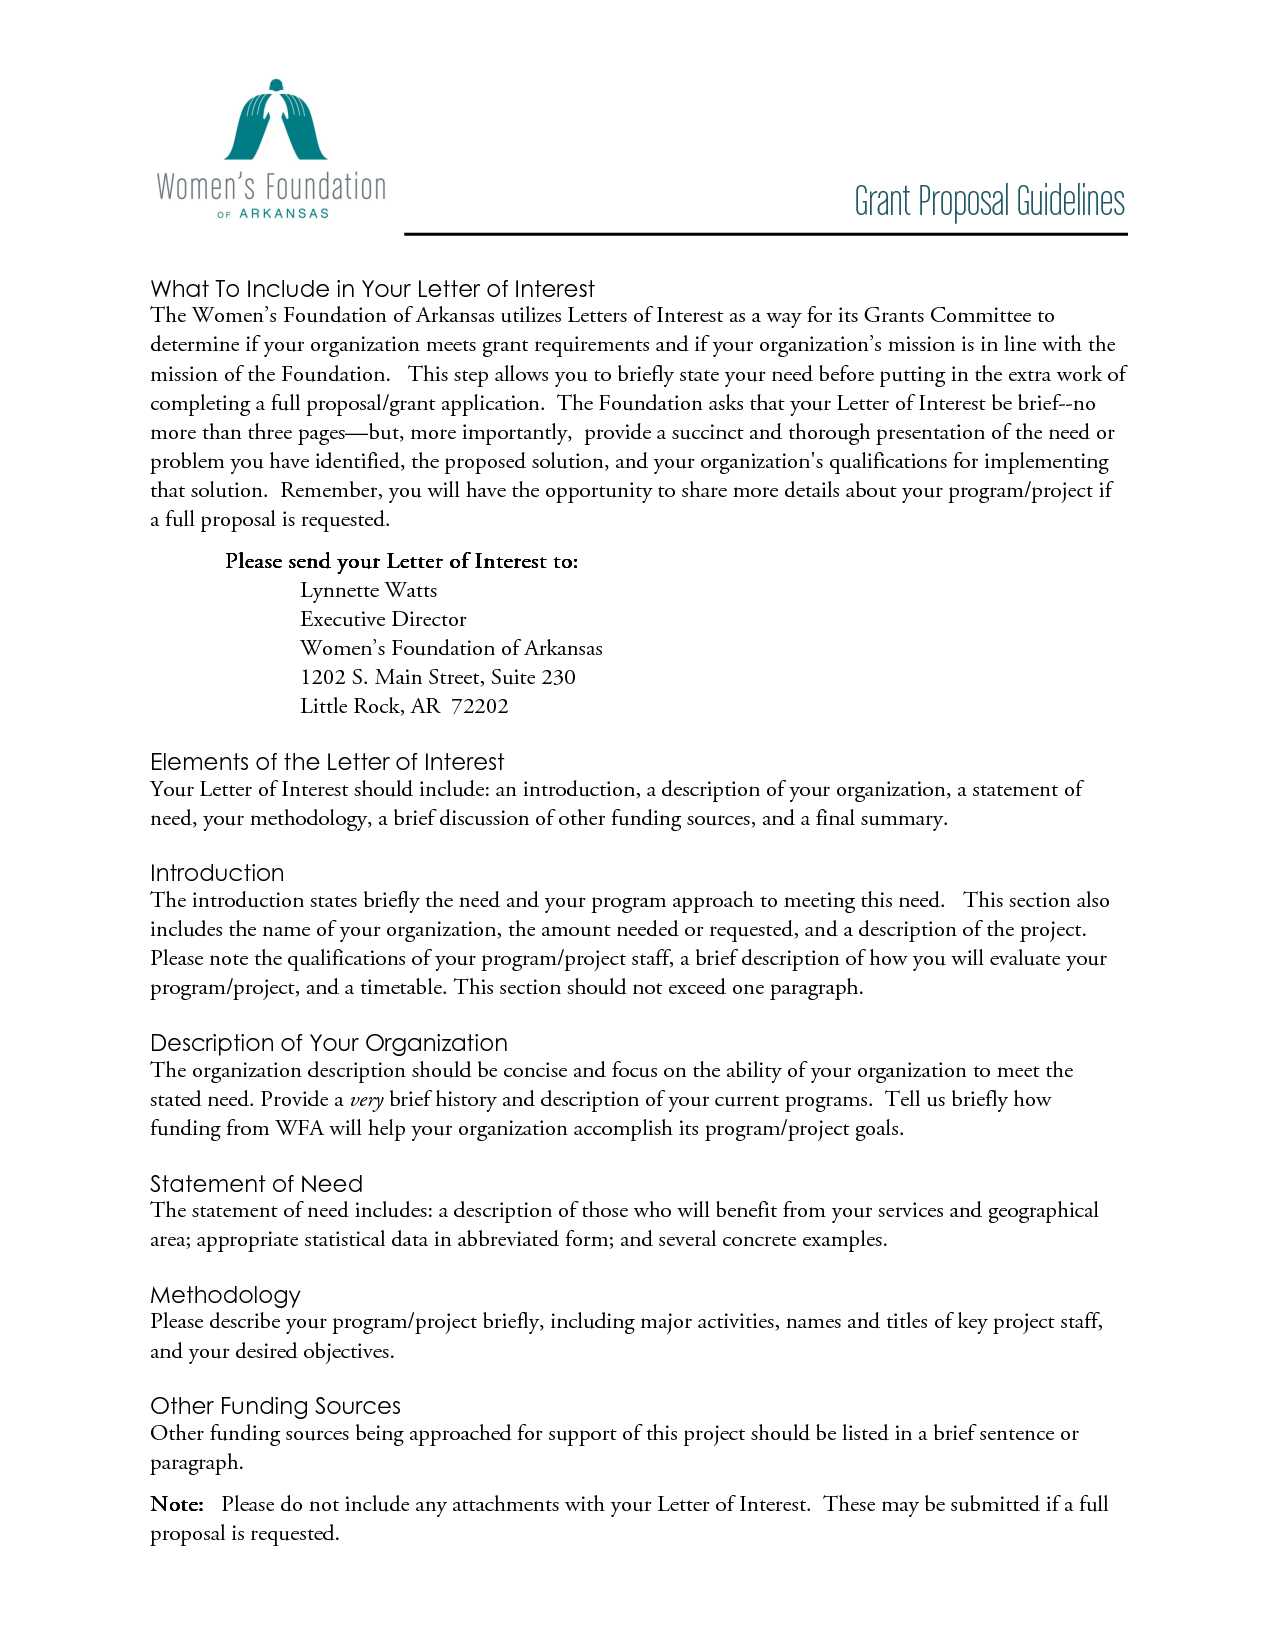 Free Letter Of Interest Templates  Letter Of Interest Grant Intended For Nsf Proposal Template